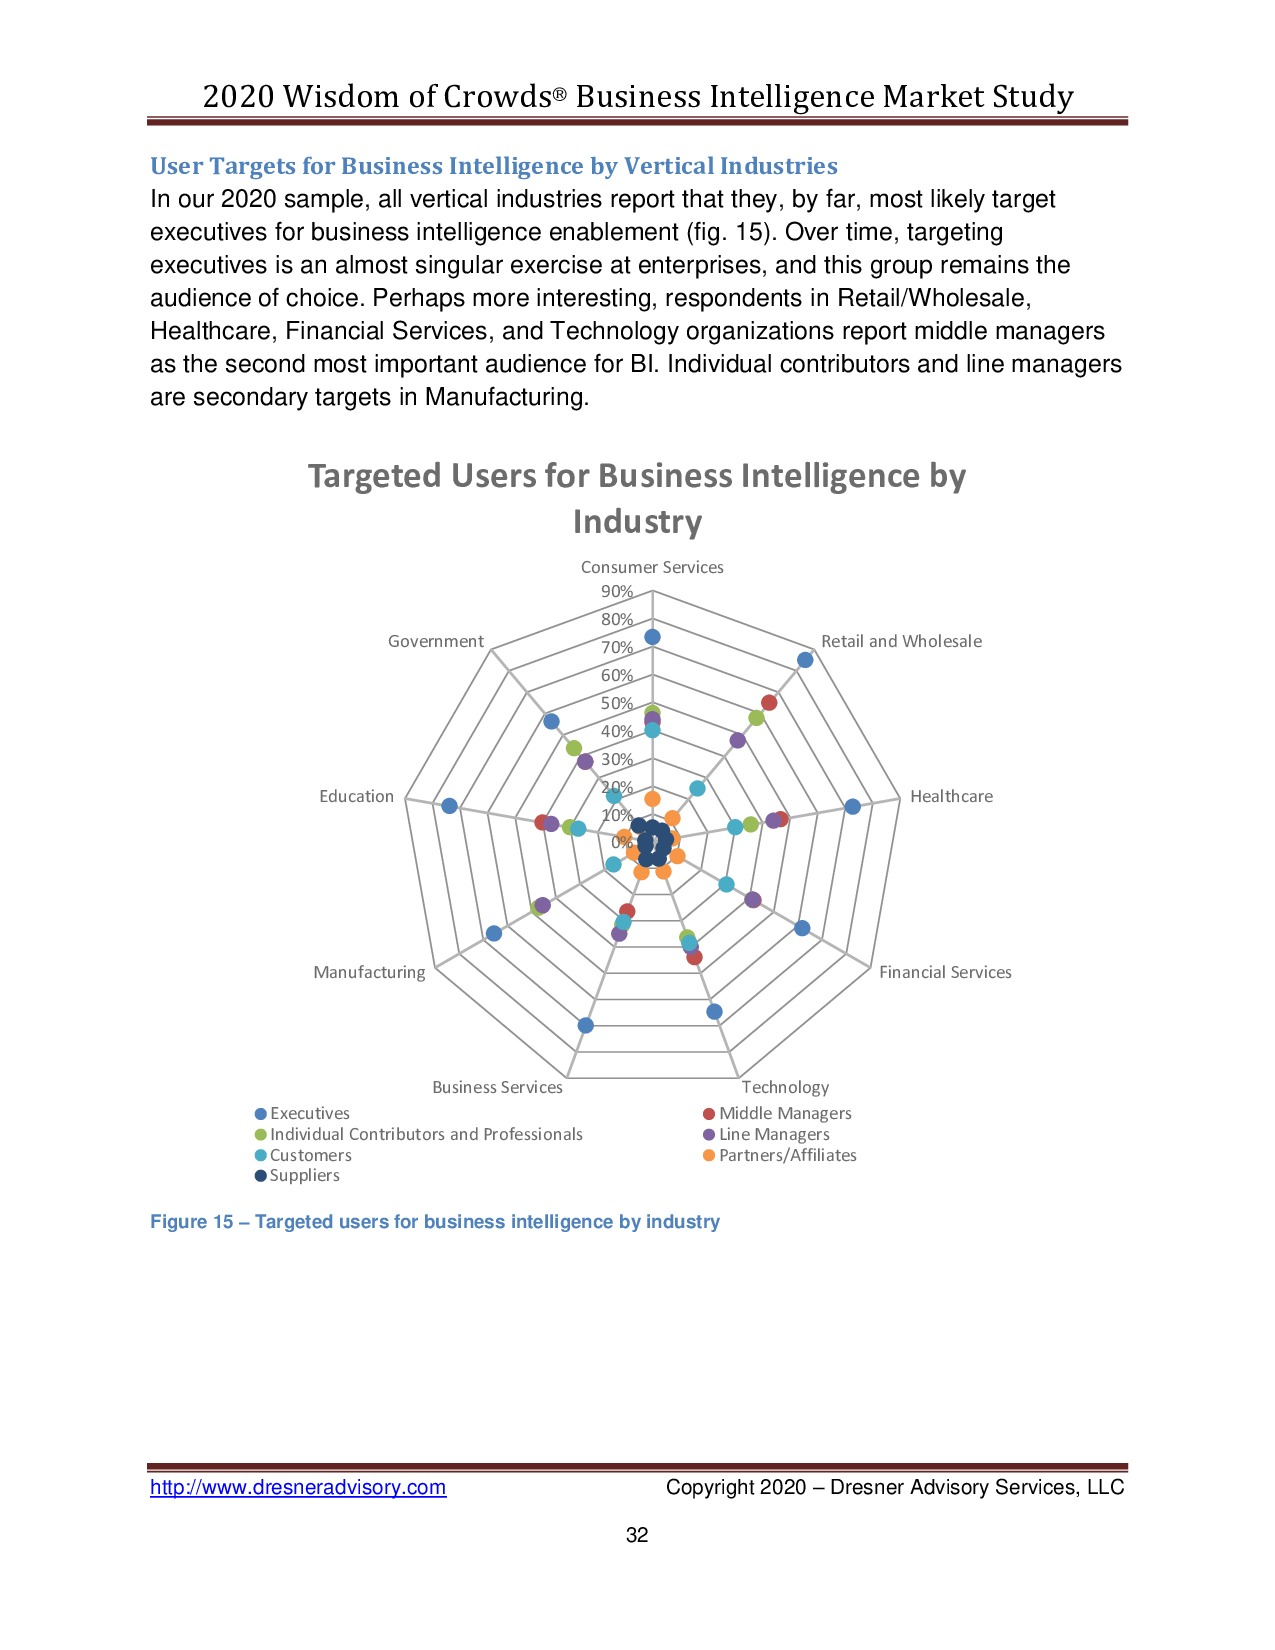 Dresner Advisory – Business Intelligence Marktstudie 2020 | Page 32